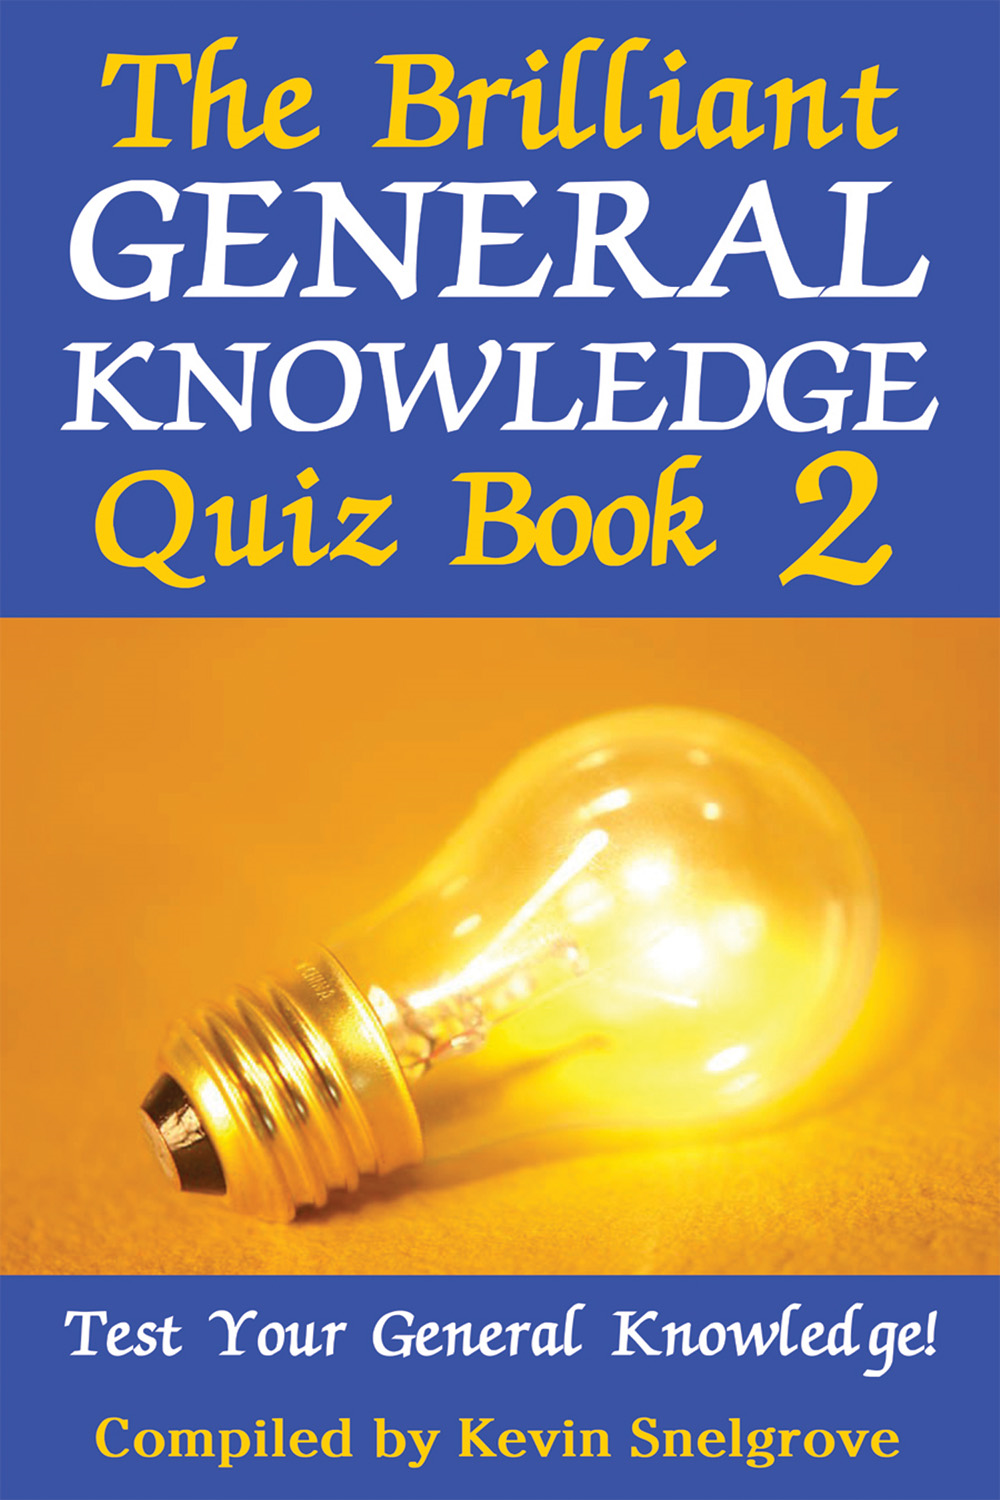 The Brilliant General Knowledge Quiz Book 2